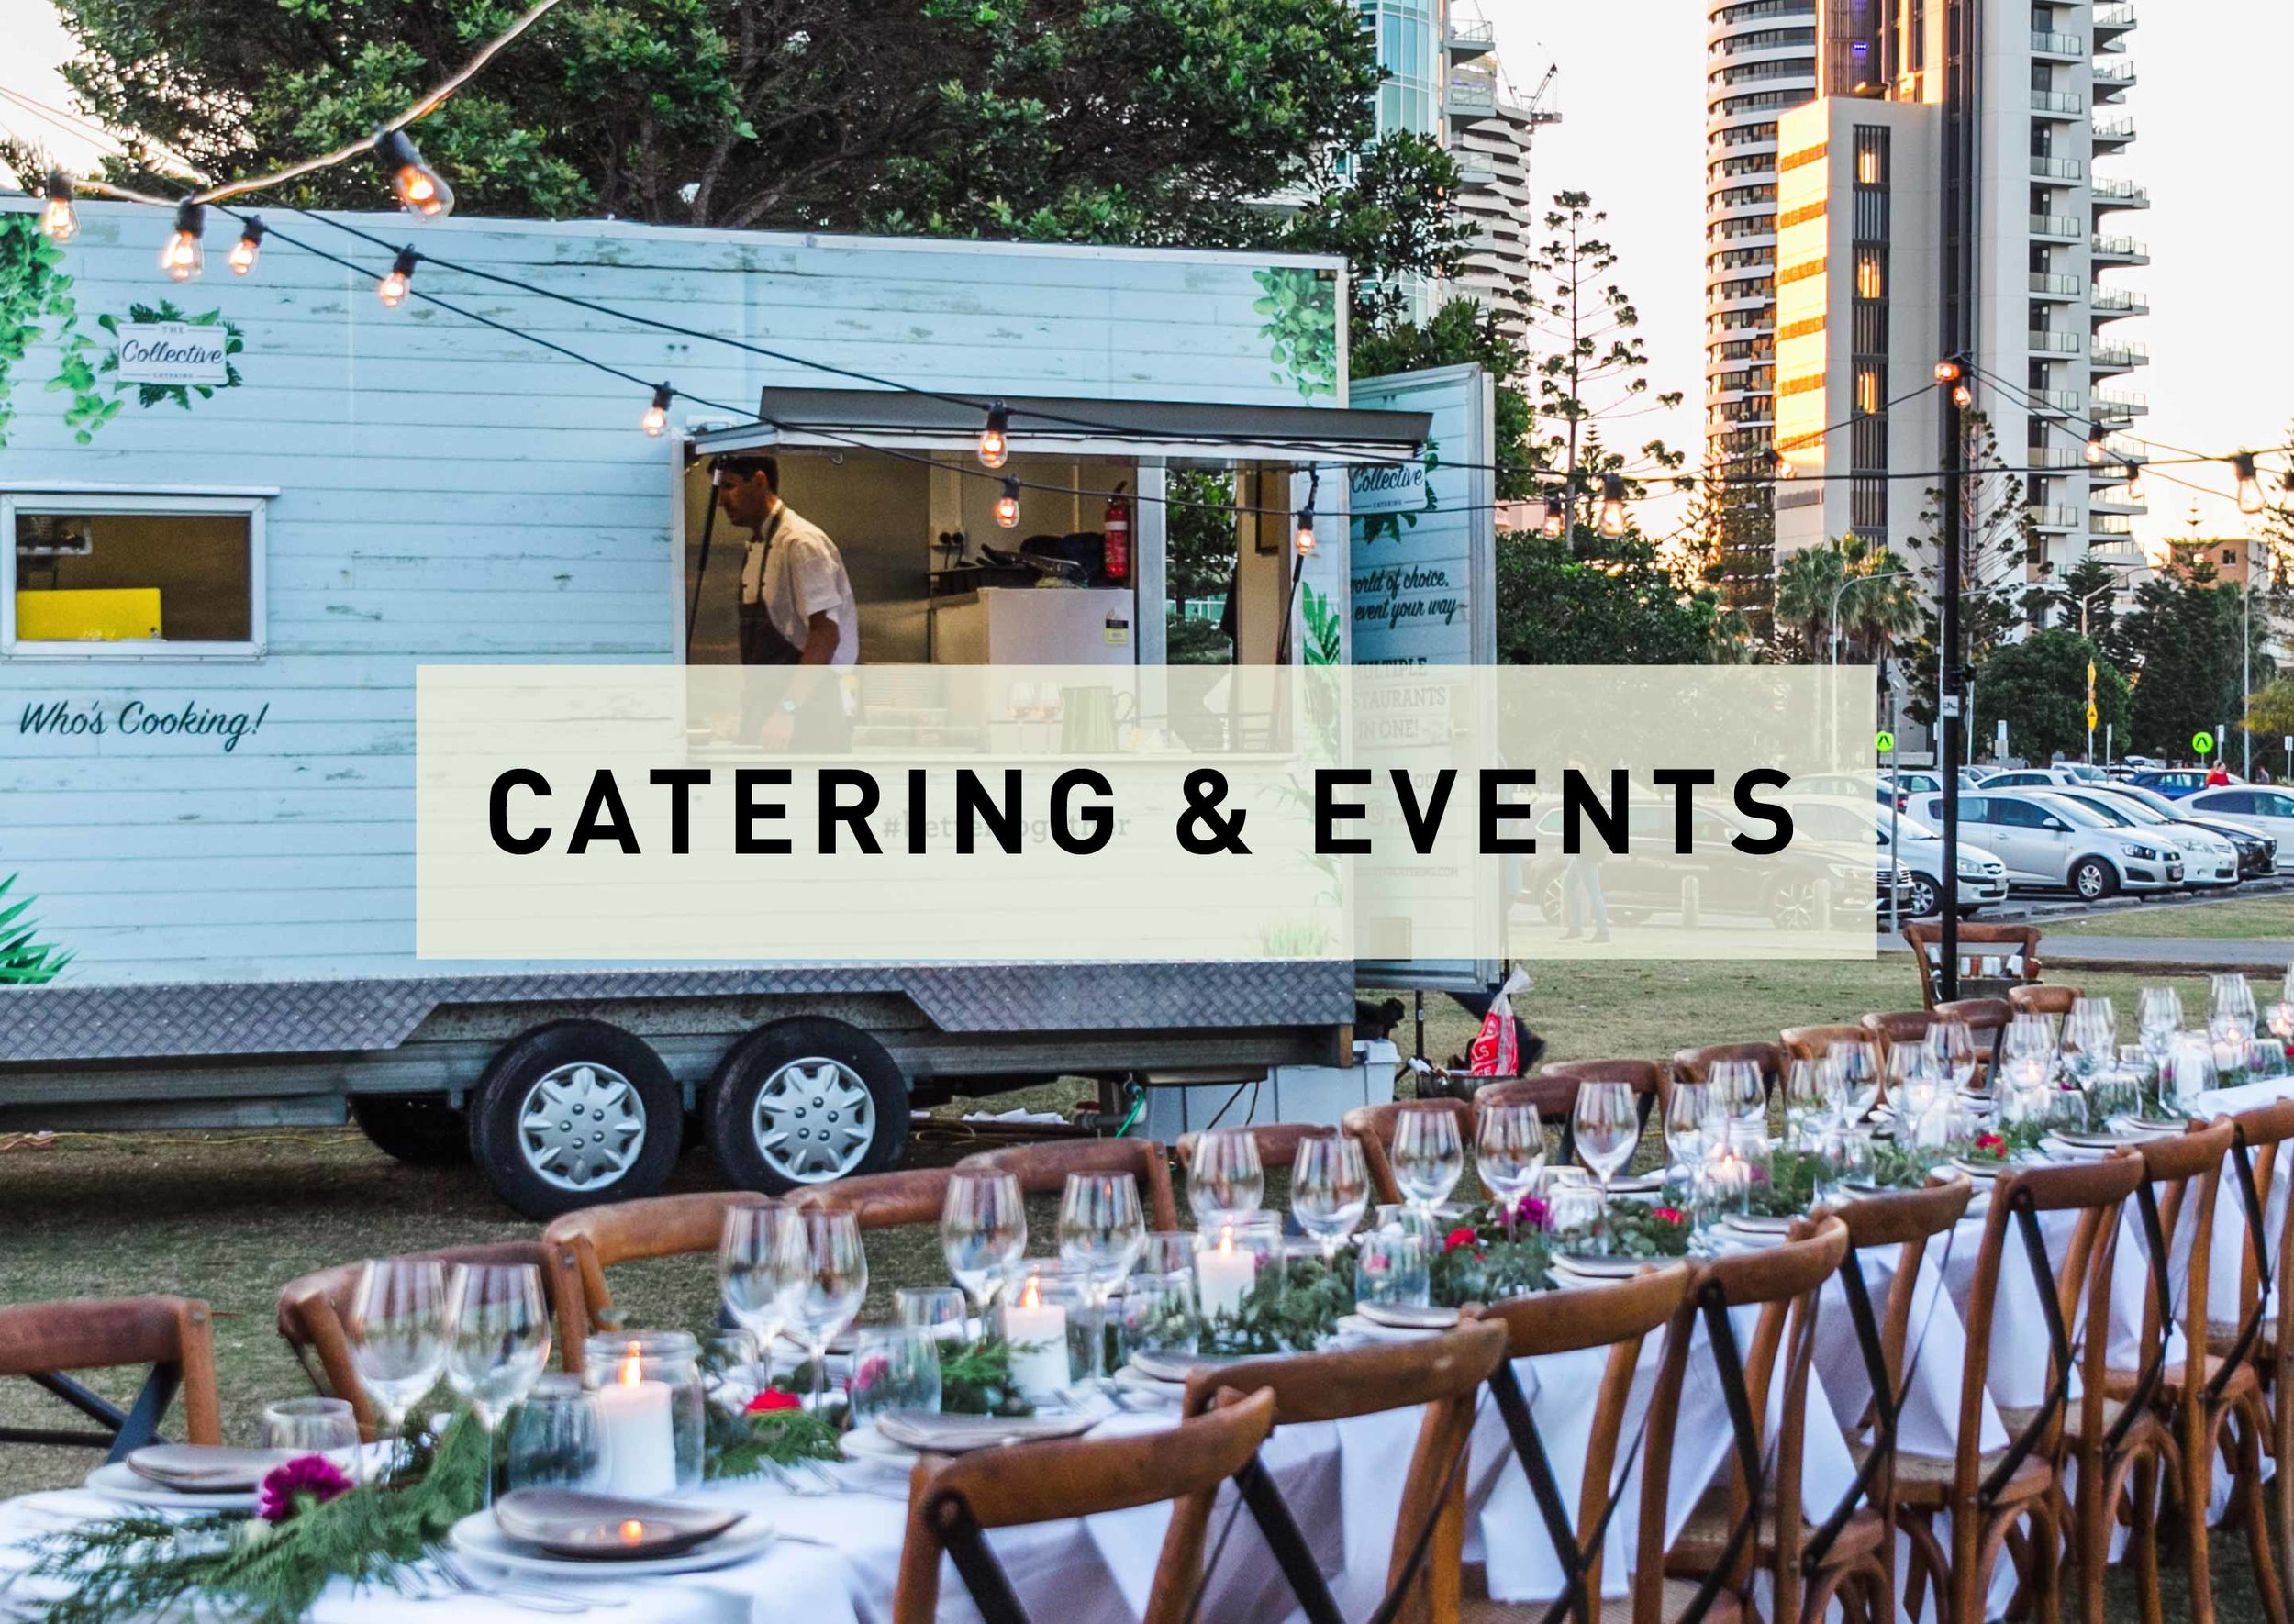 Catering and Events-01.jpg